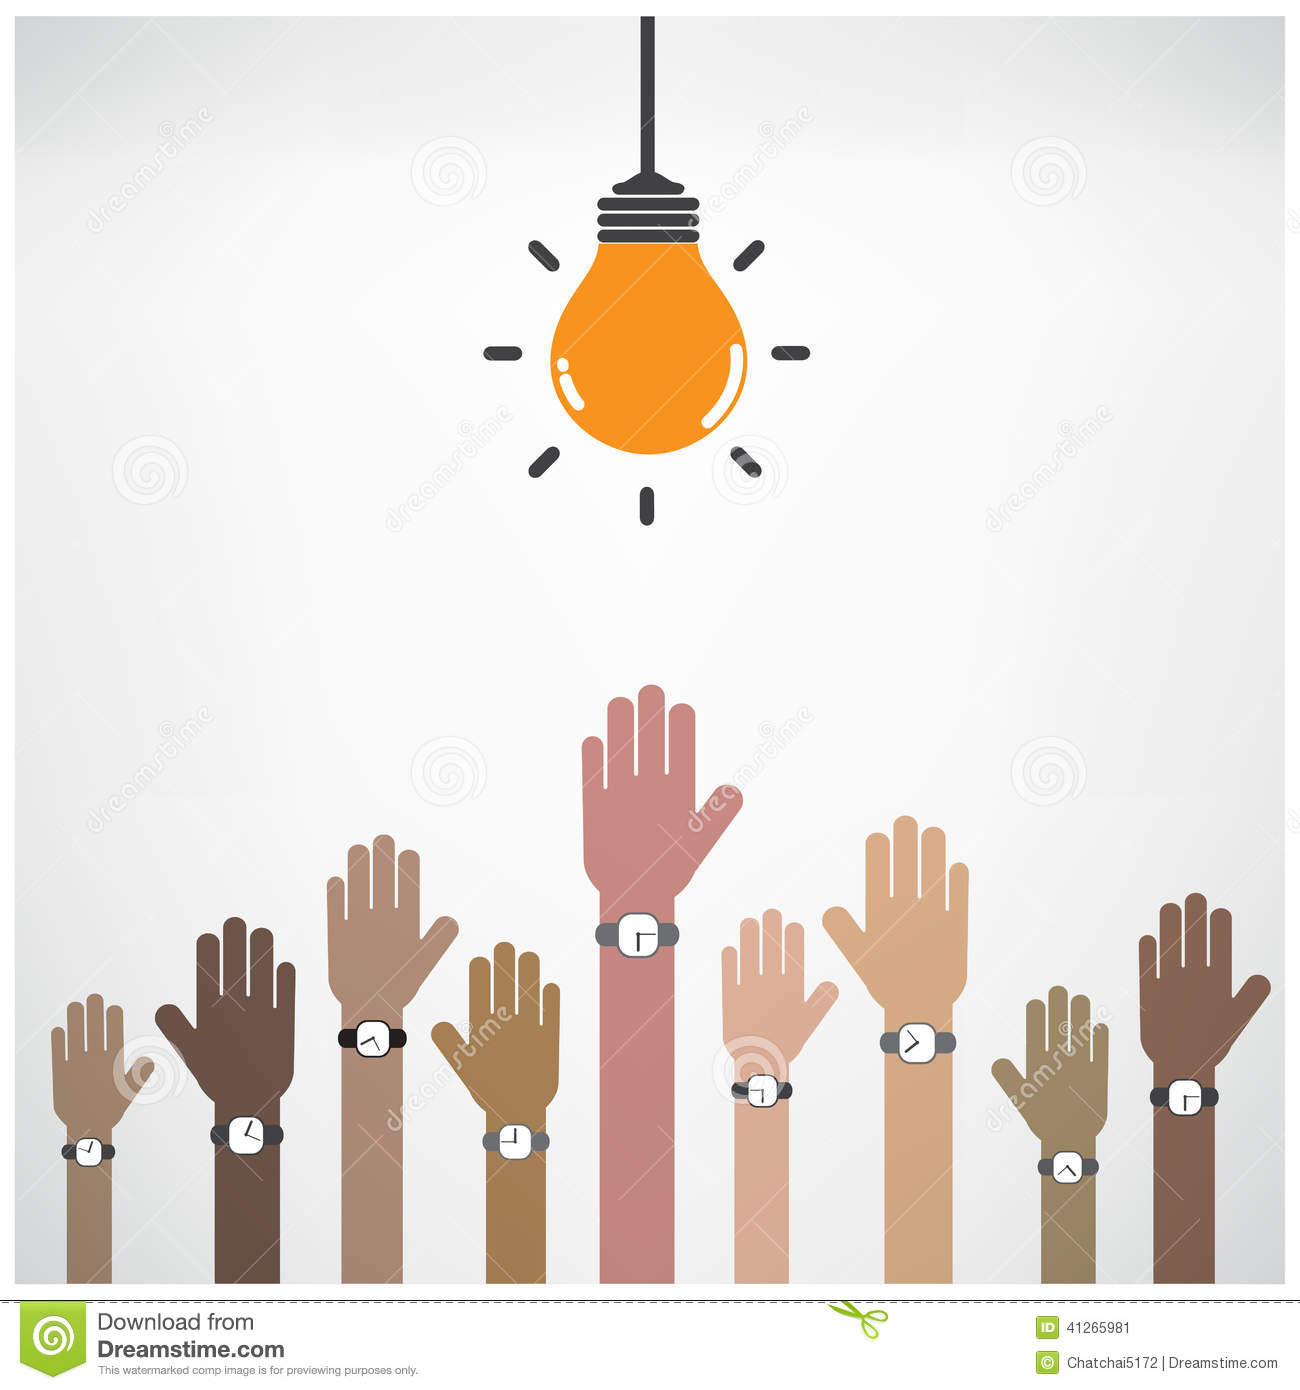 Poster design education - Businessman Hand Symbol With Creative Light Bulb Sign Design Fo Stock Vector